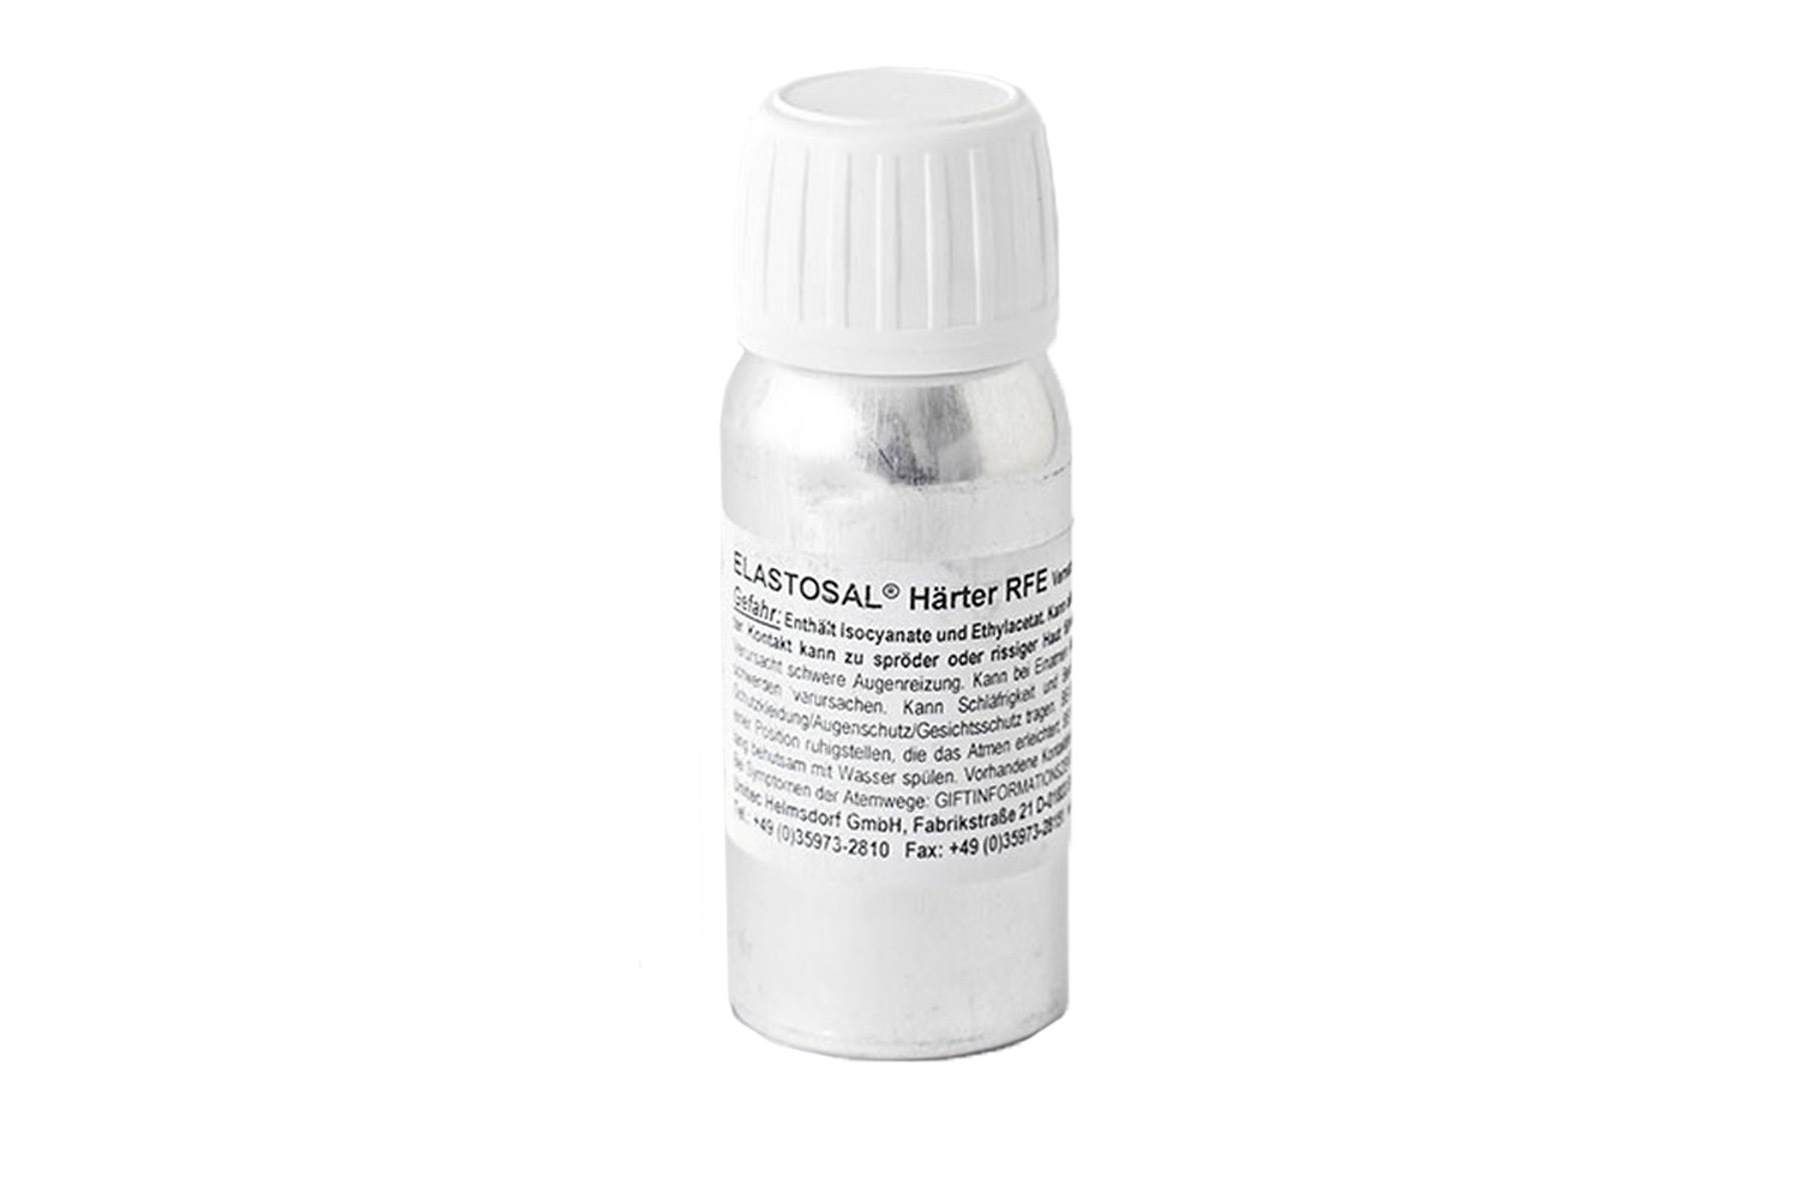 Elastosal RFE, hardener for HELAPLAST glue, 15g